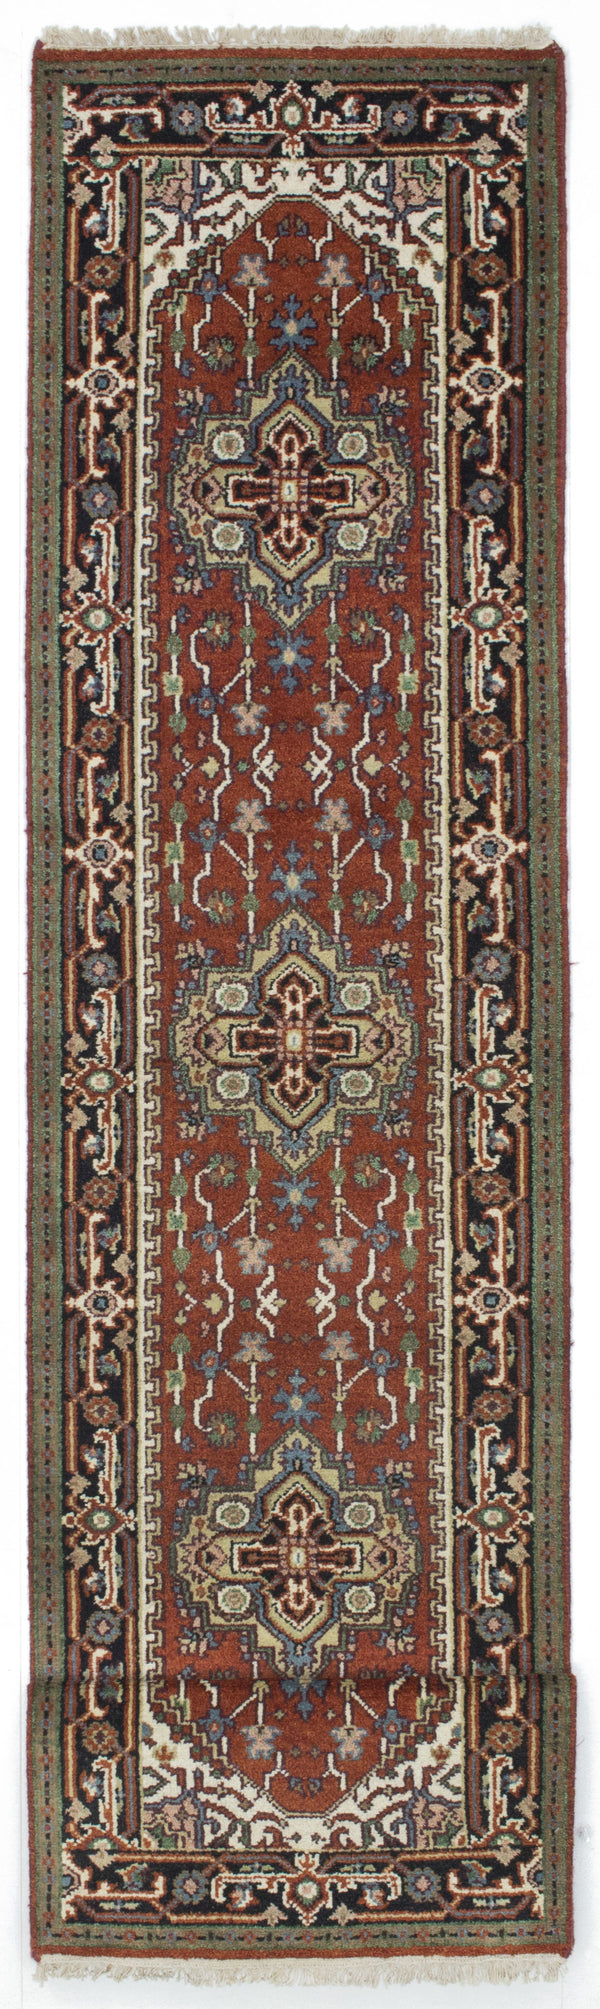 "Hand-knotted Indian Floral  Traditional Serapi-Heritage Runner rug  Dark Orange 2'6 x 11'11"" """